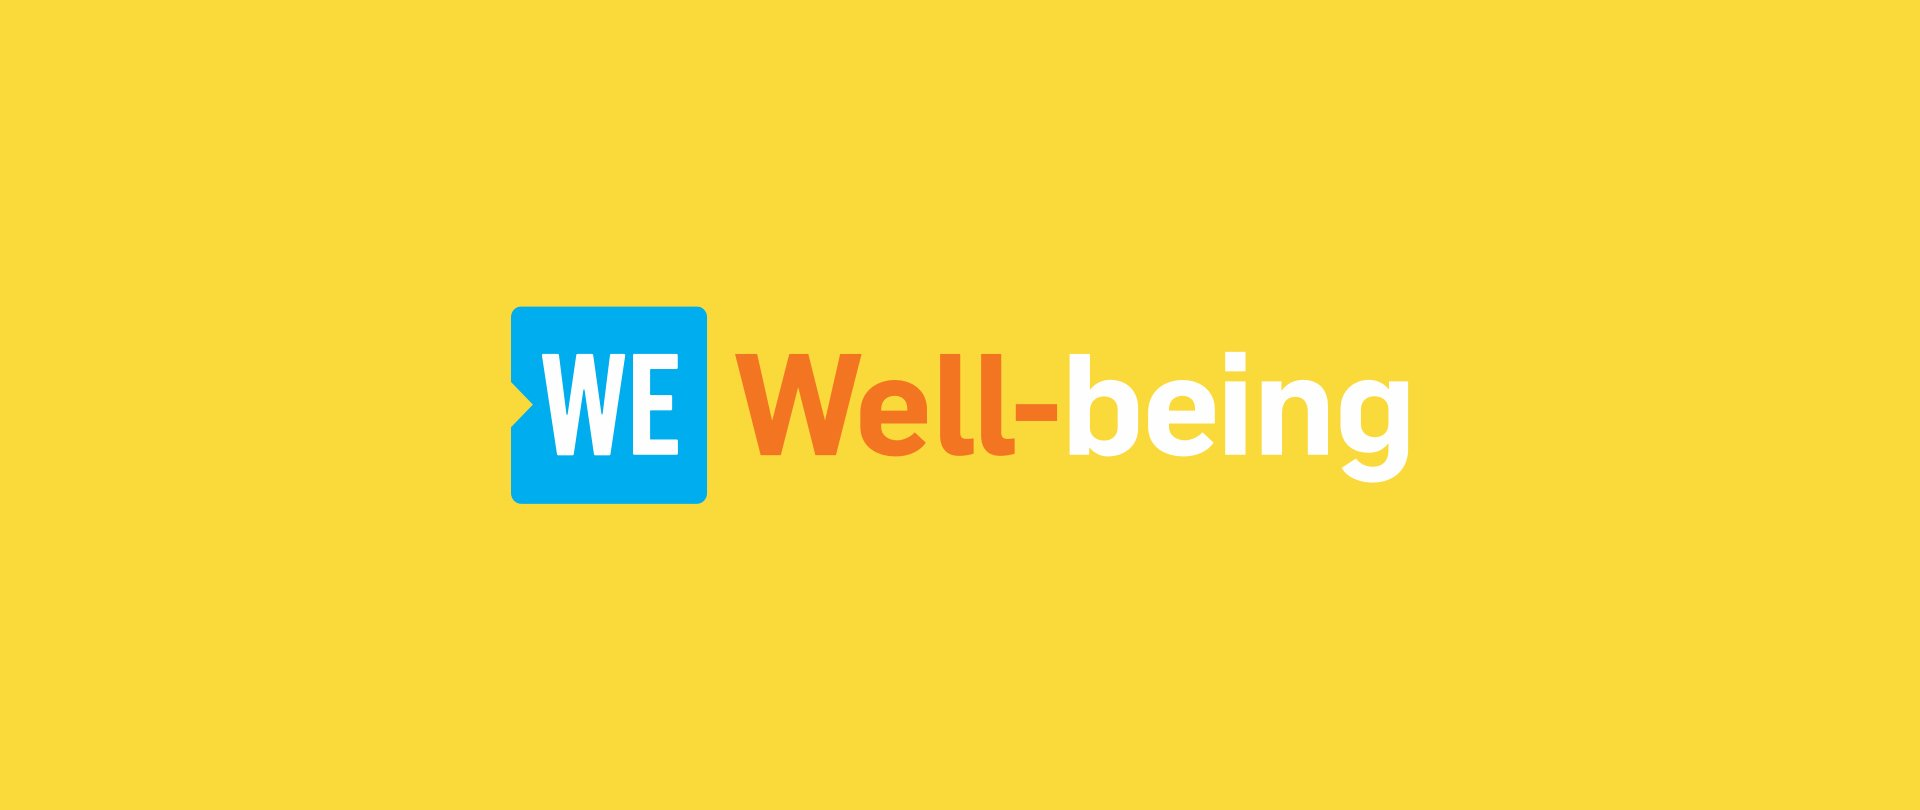 SCP Hotel donates to WE Well-being